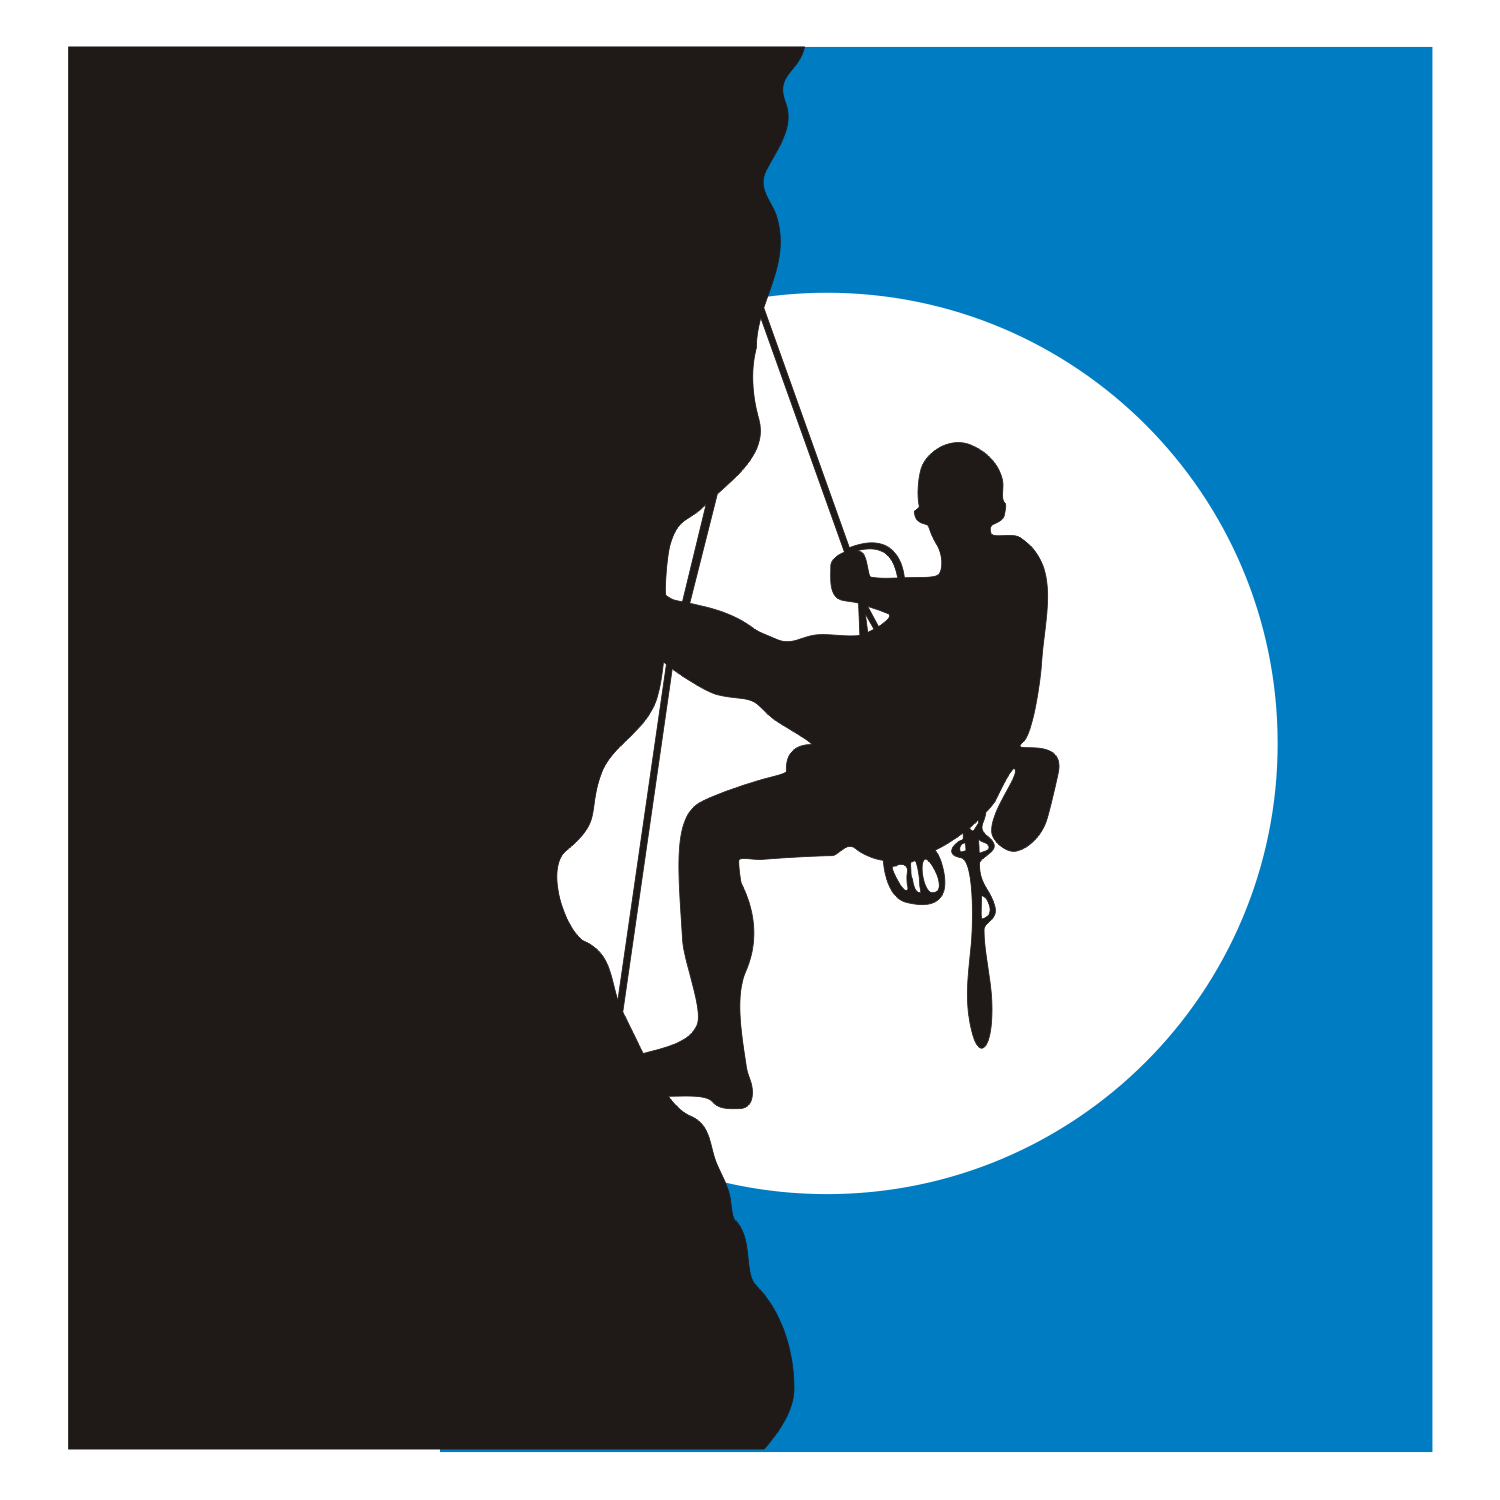 Vector for free use: Rock climbing